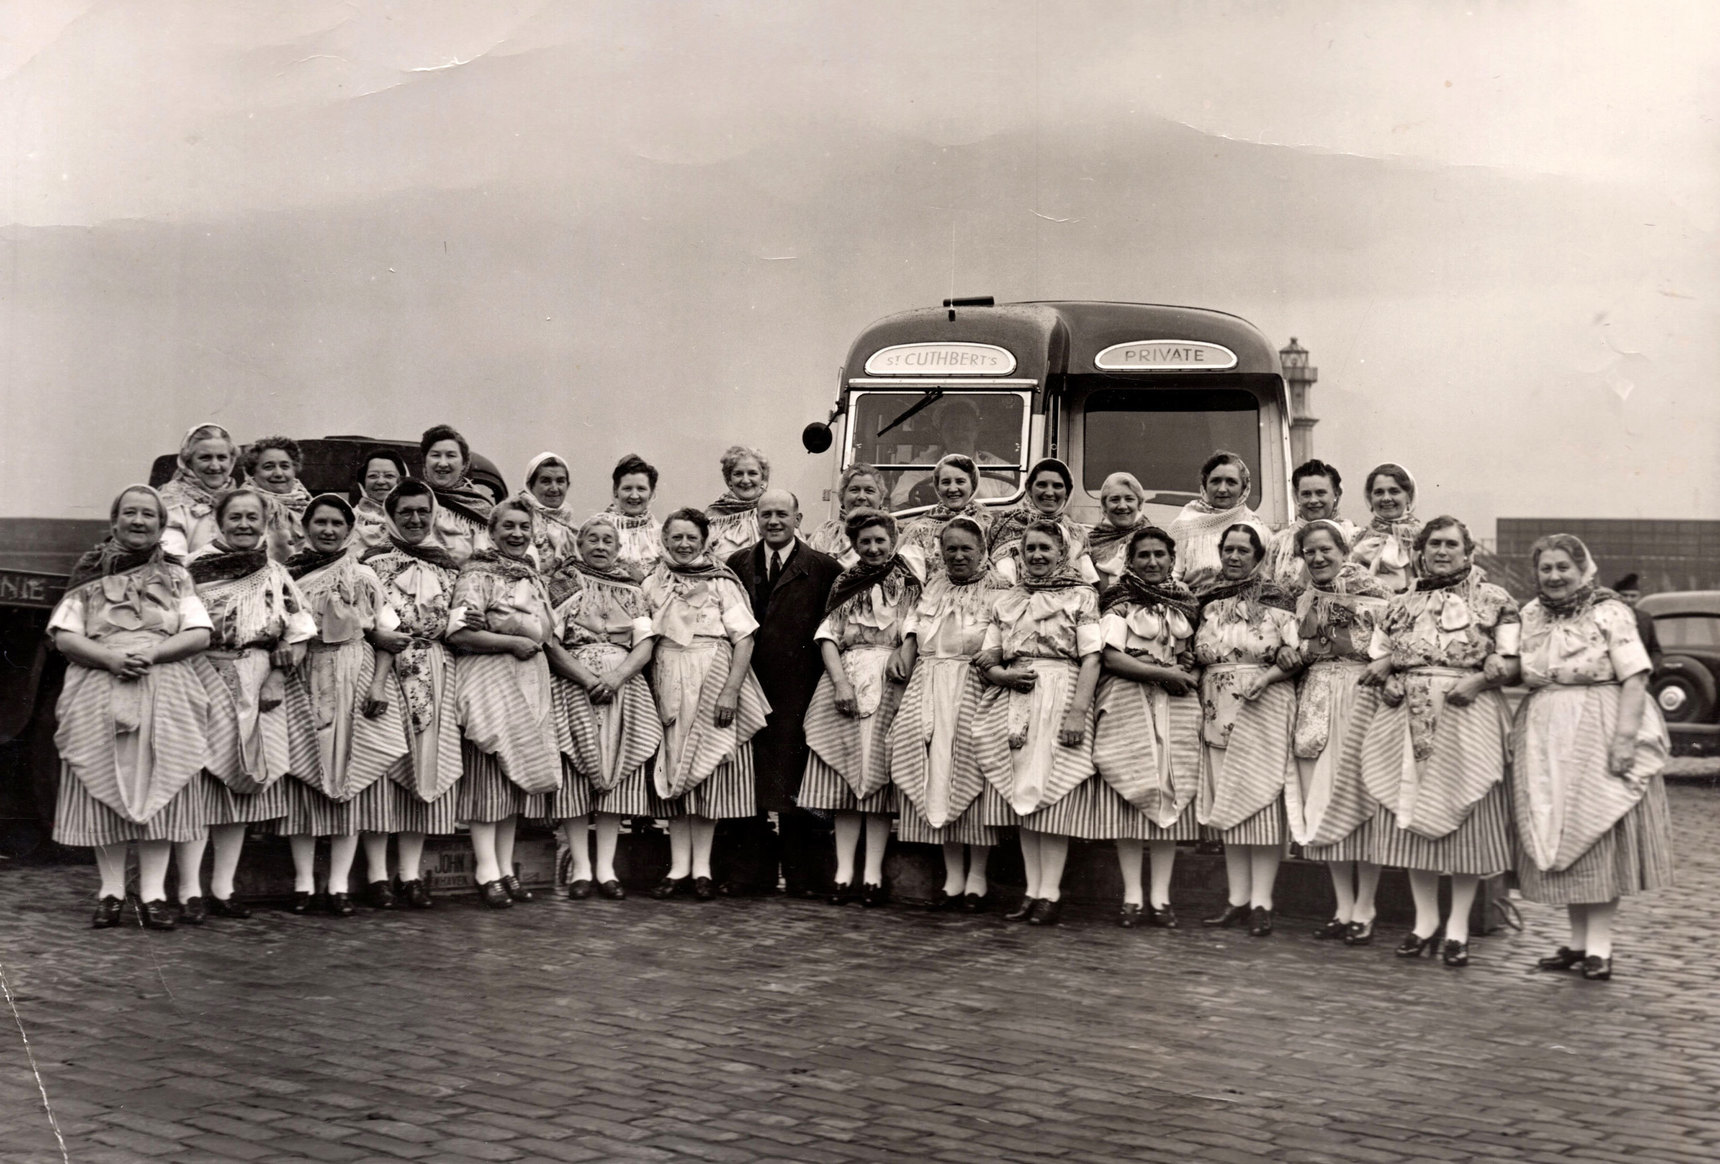 Newhaven Fishwives Choir At Harbour 1930s